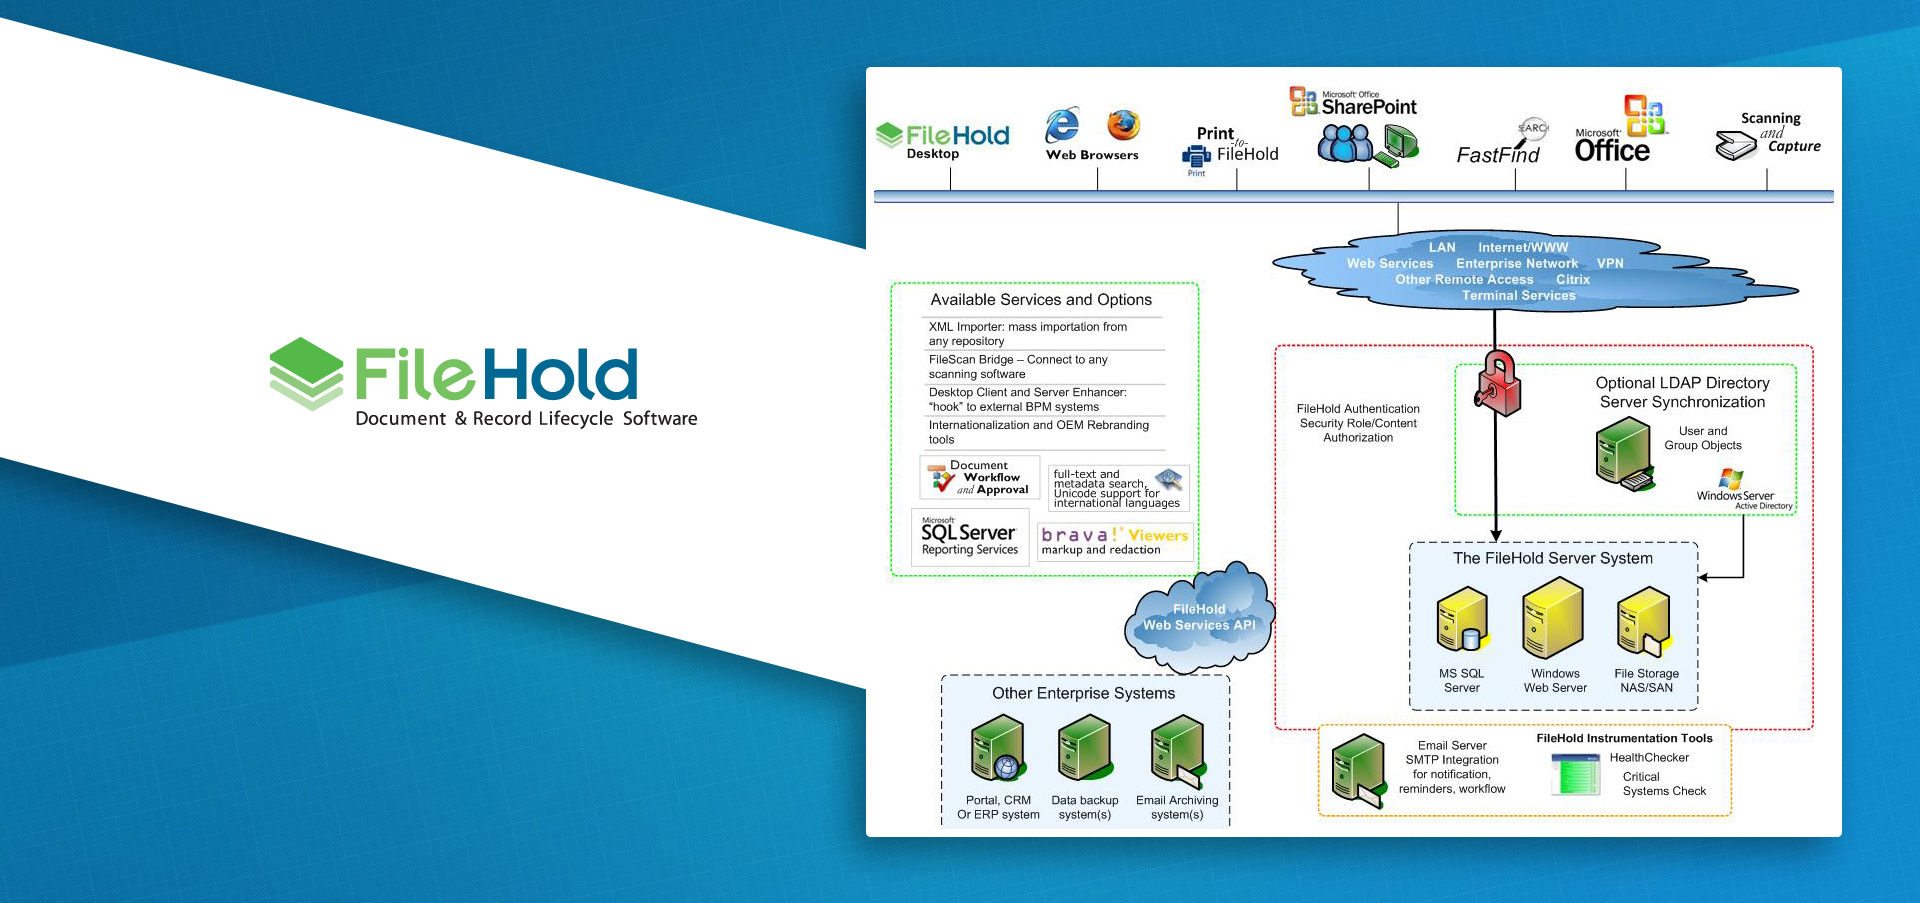 FileHold Systems Inc.: Business Solutions for Document Management Challenges